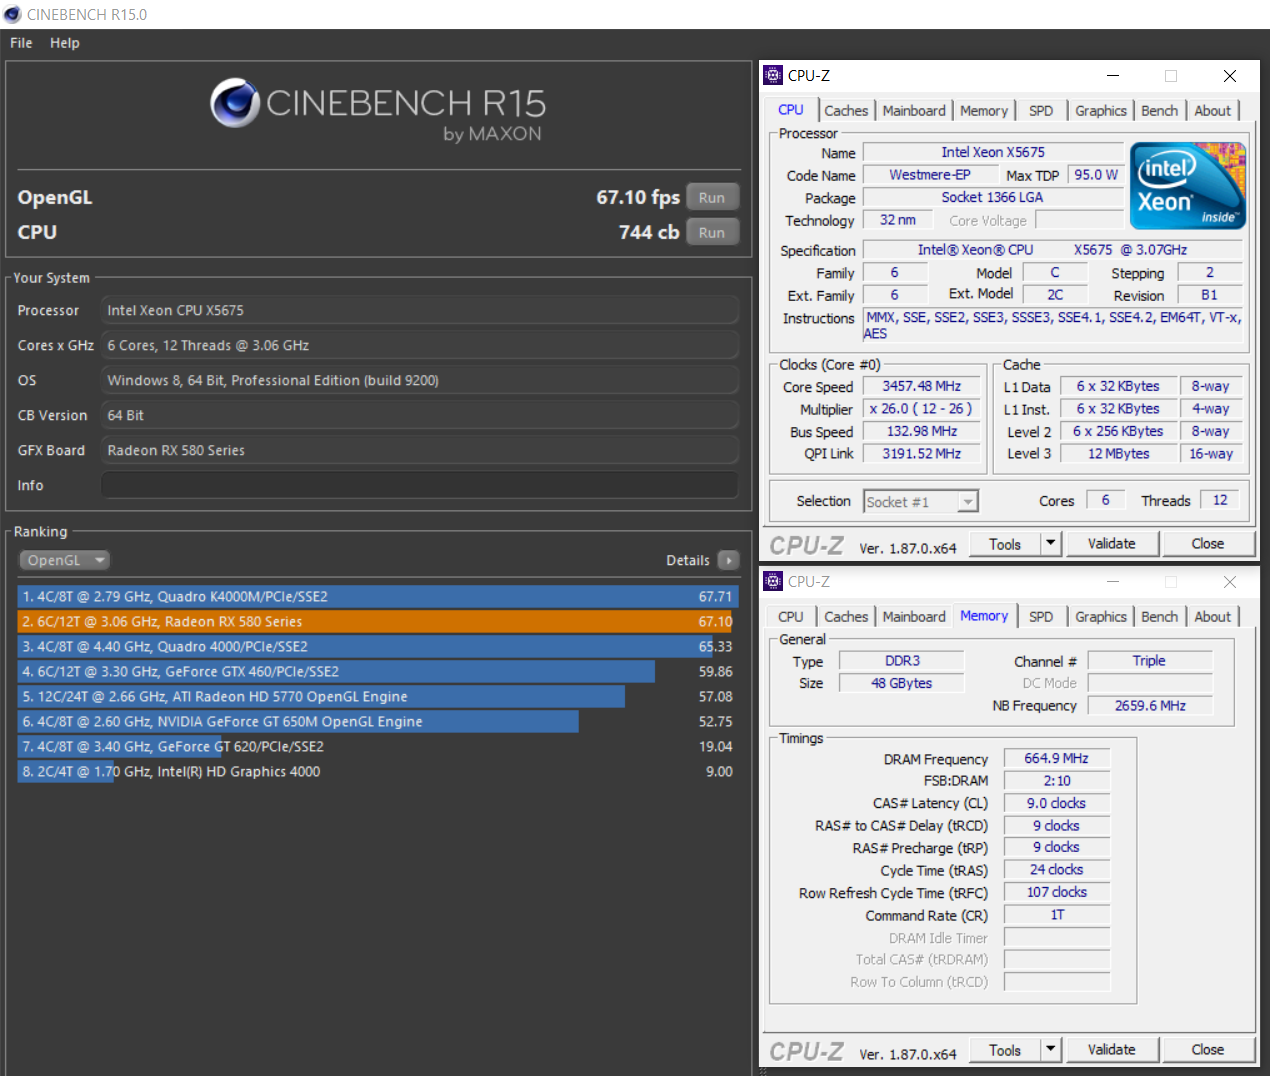 cinebench_C.PNG